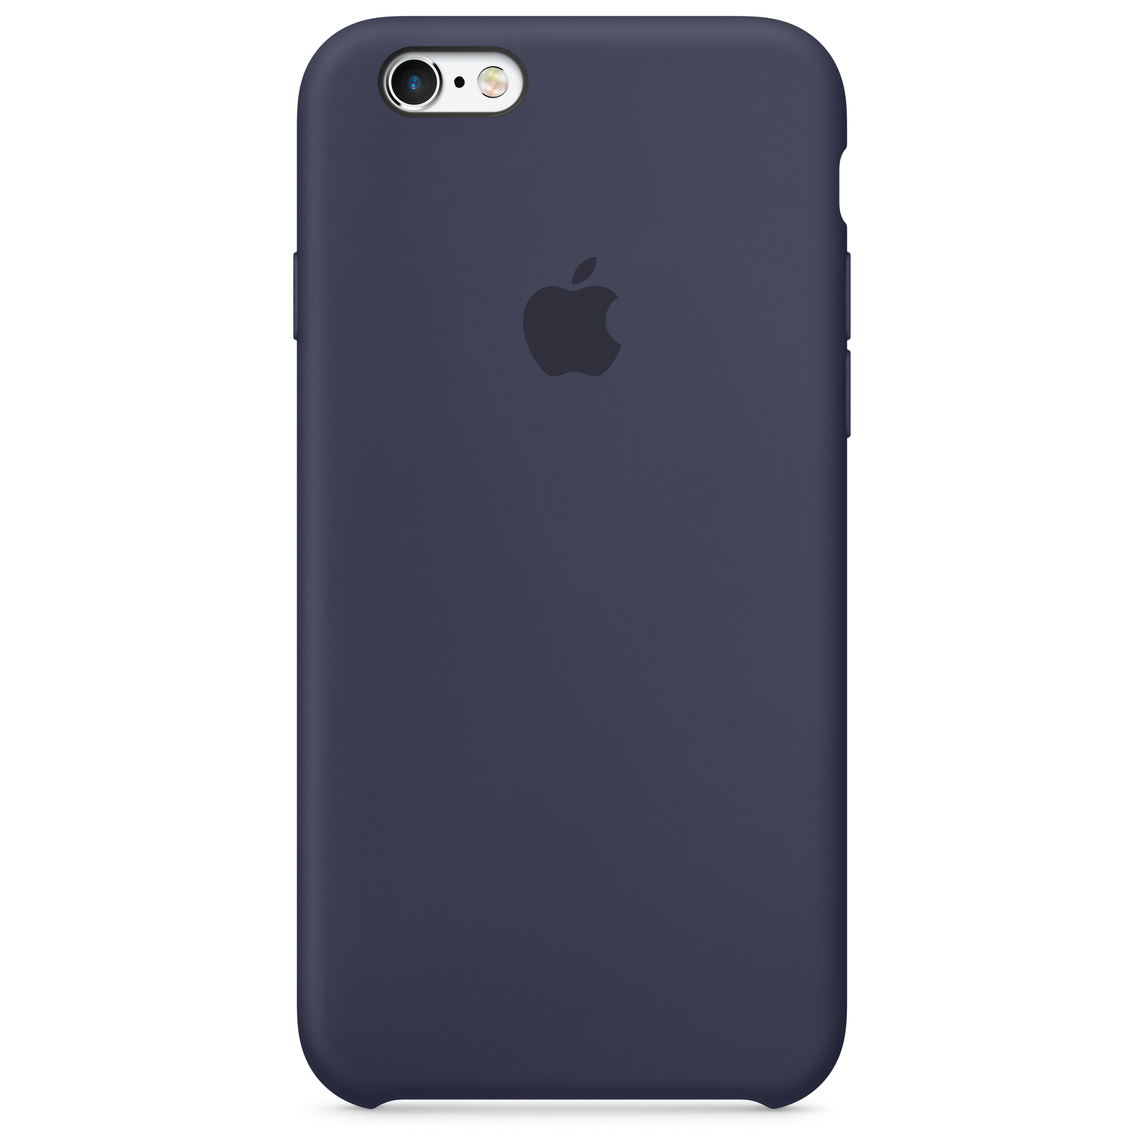 reputable site 7ab0b 5283b iPhone 6 / 6s Silicone Case - Midnight Blue